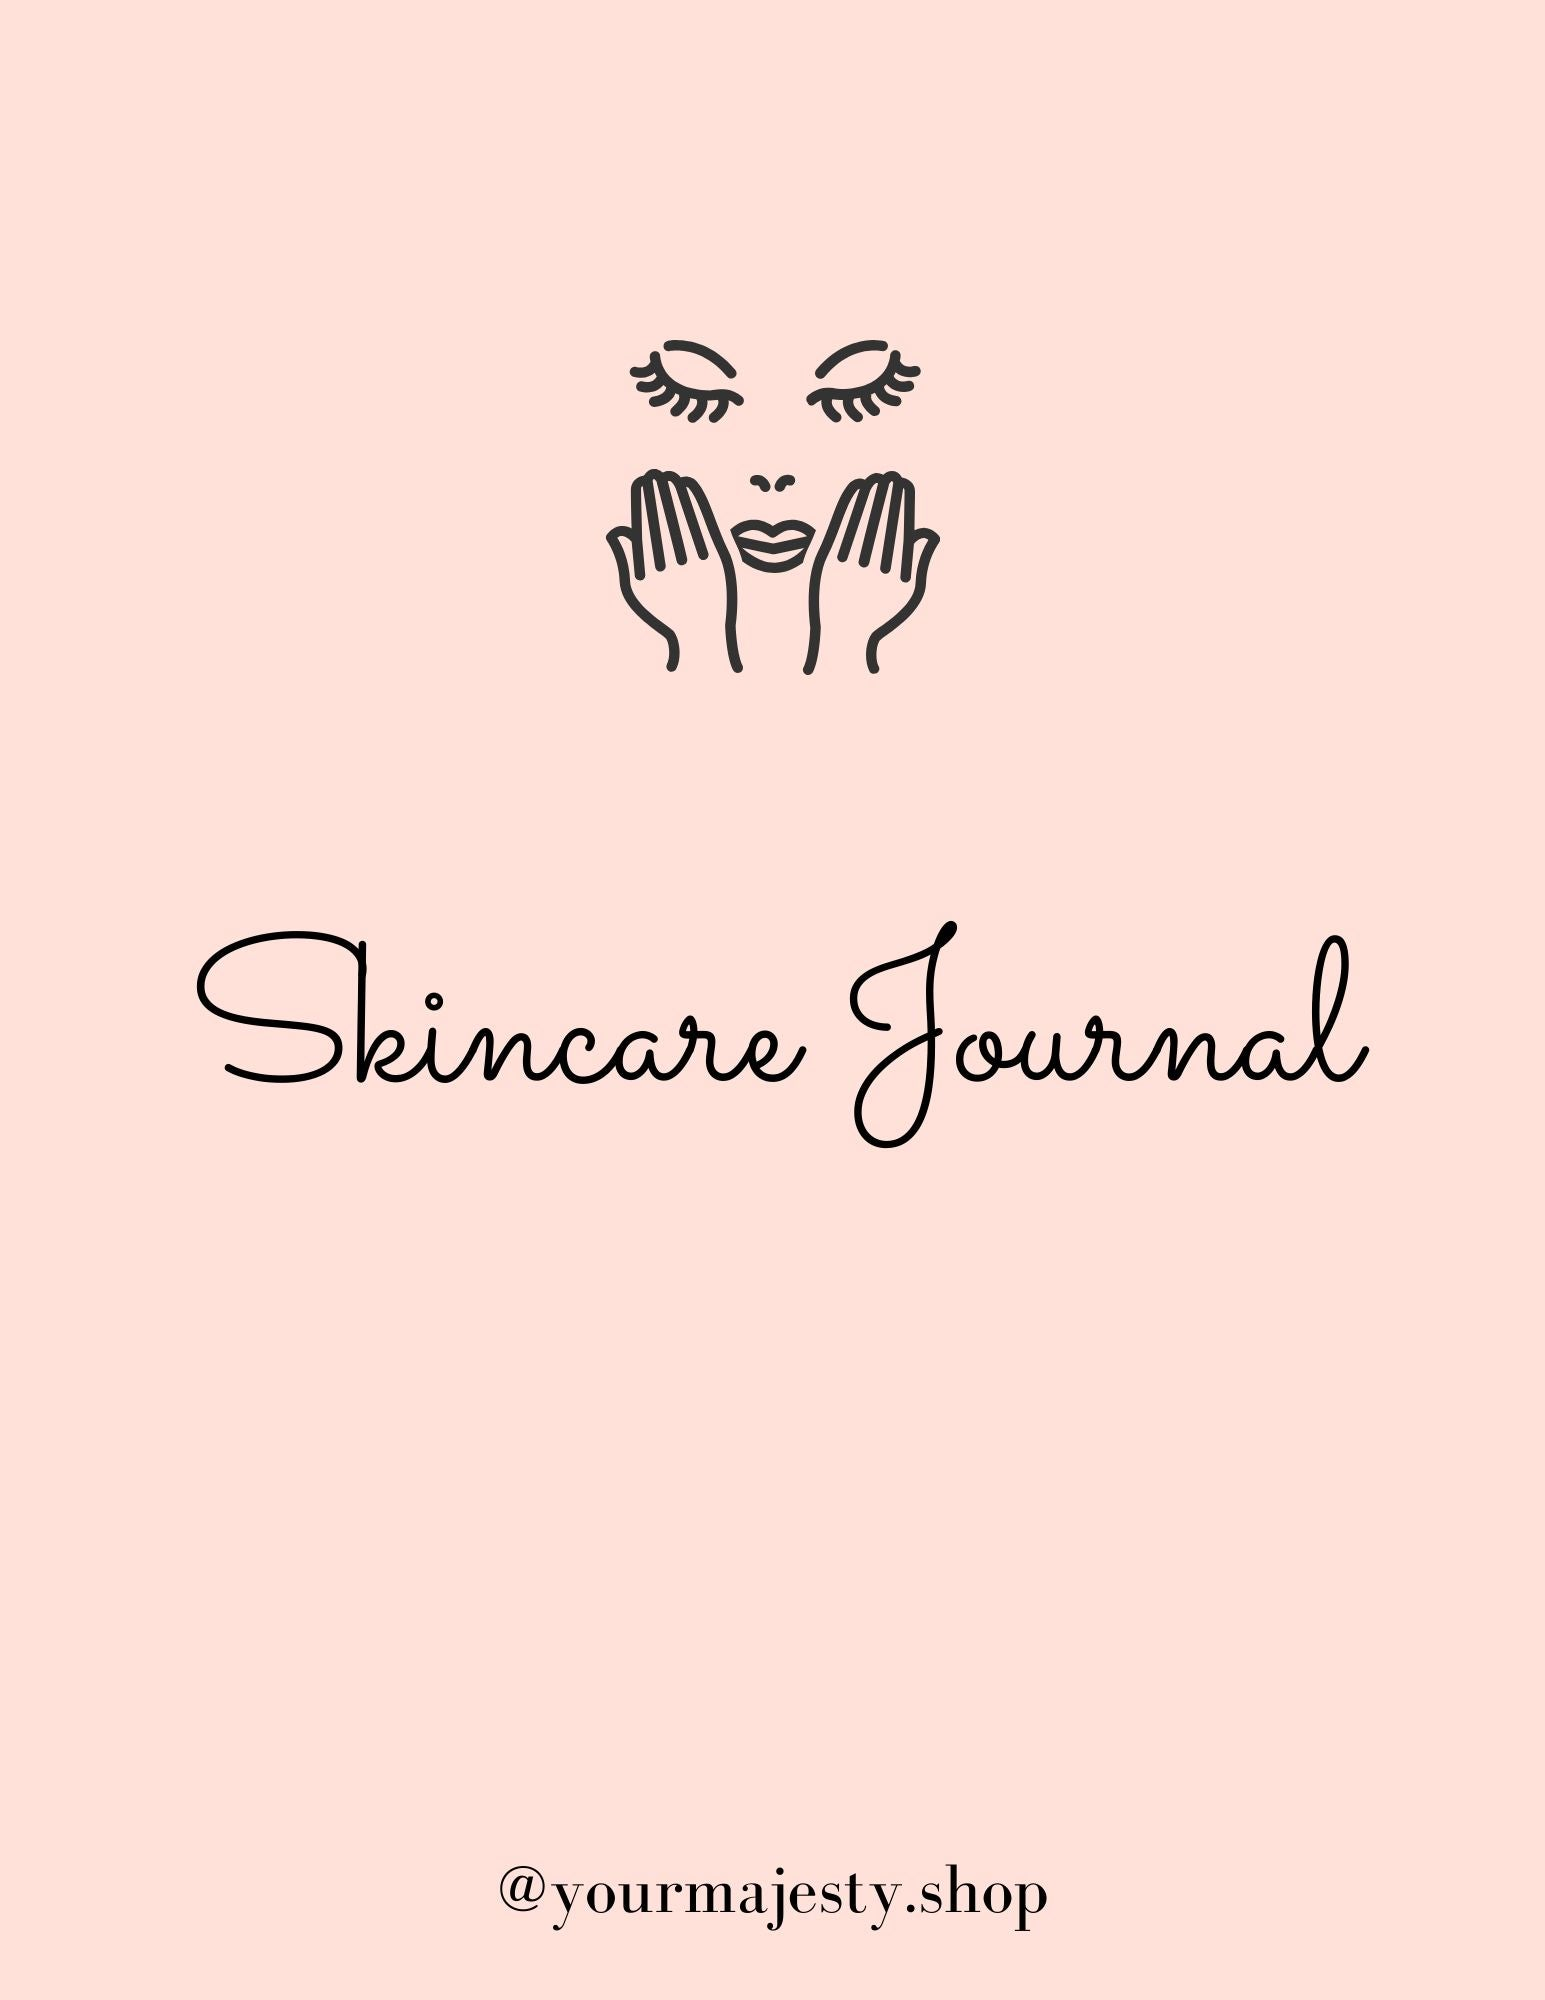 Majesty Skincare Routine Journal [FREE DOWNLOAD]